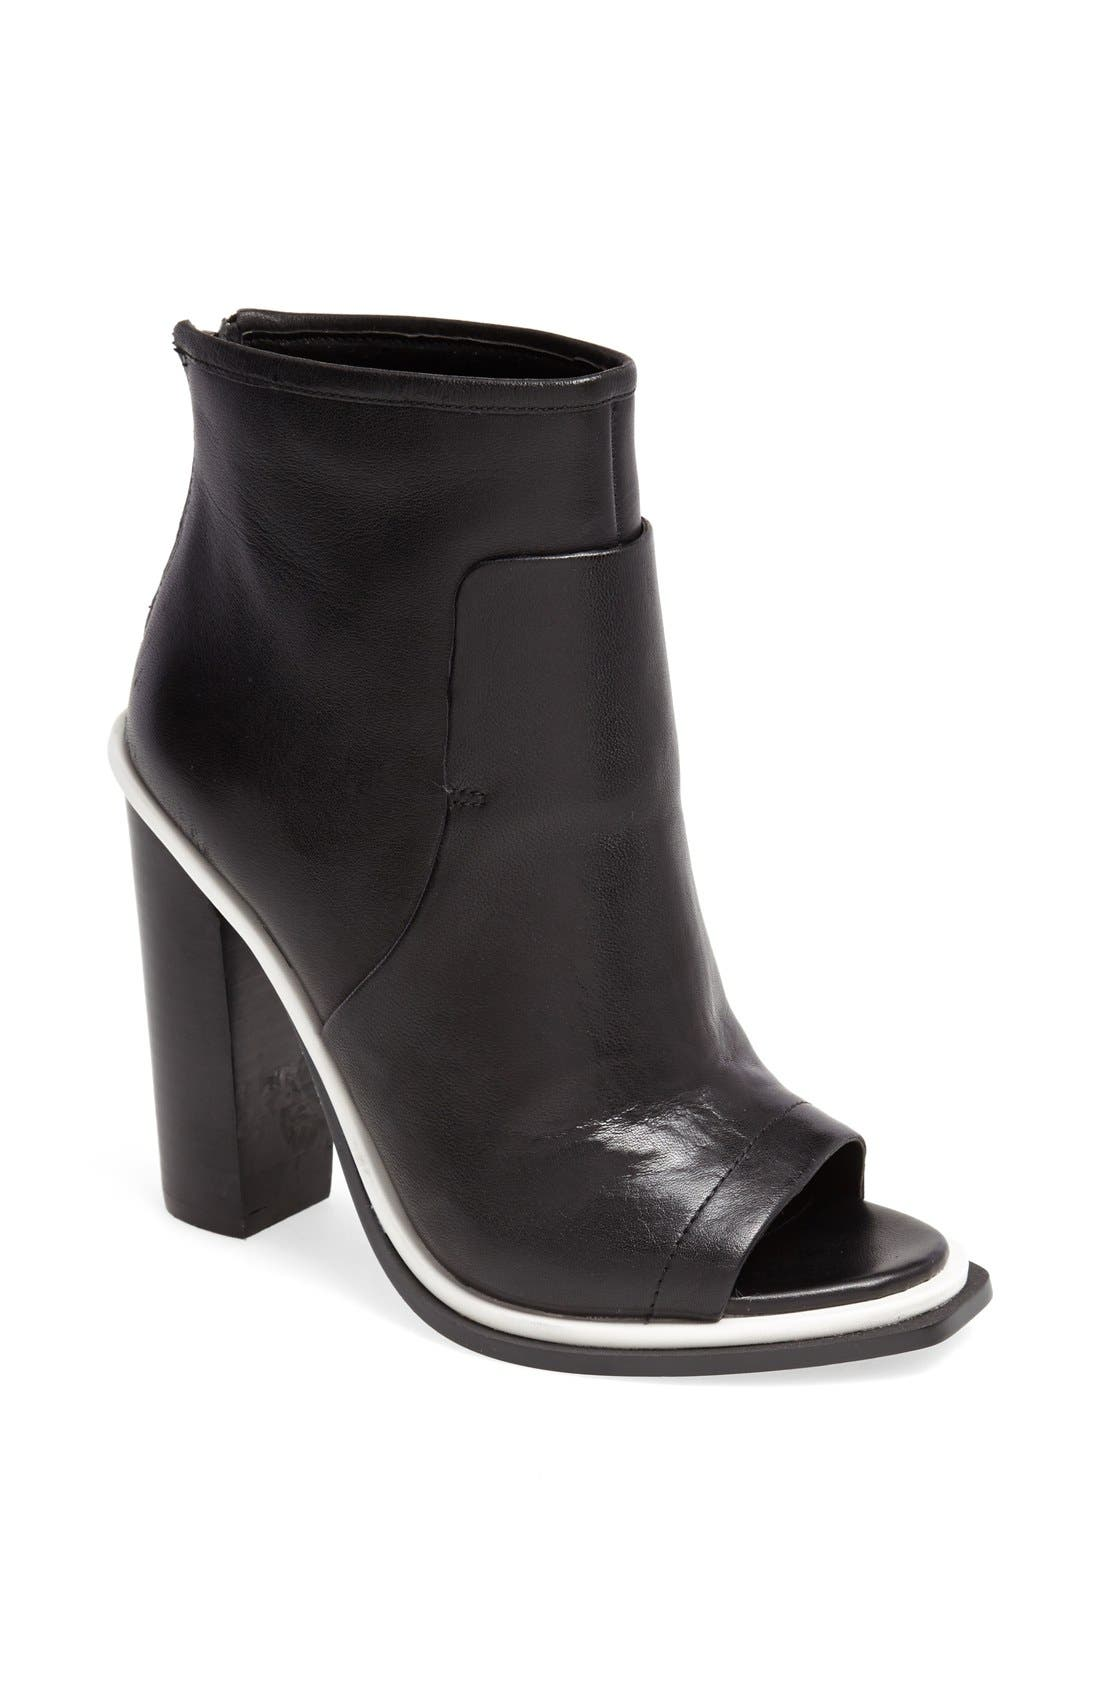 Main Image - Topshop 'Pounce' Peep Toe Boot